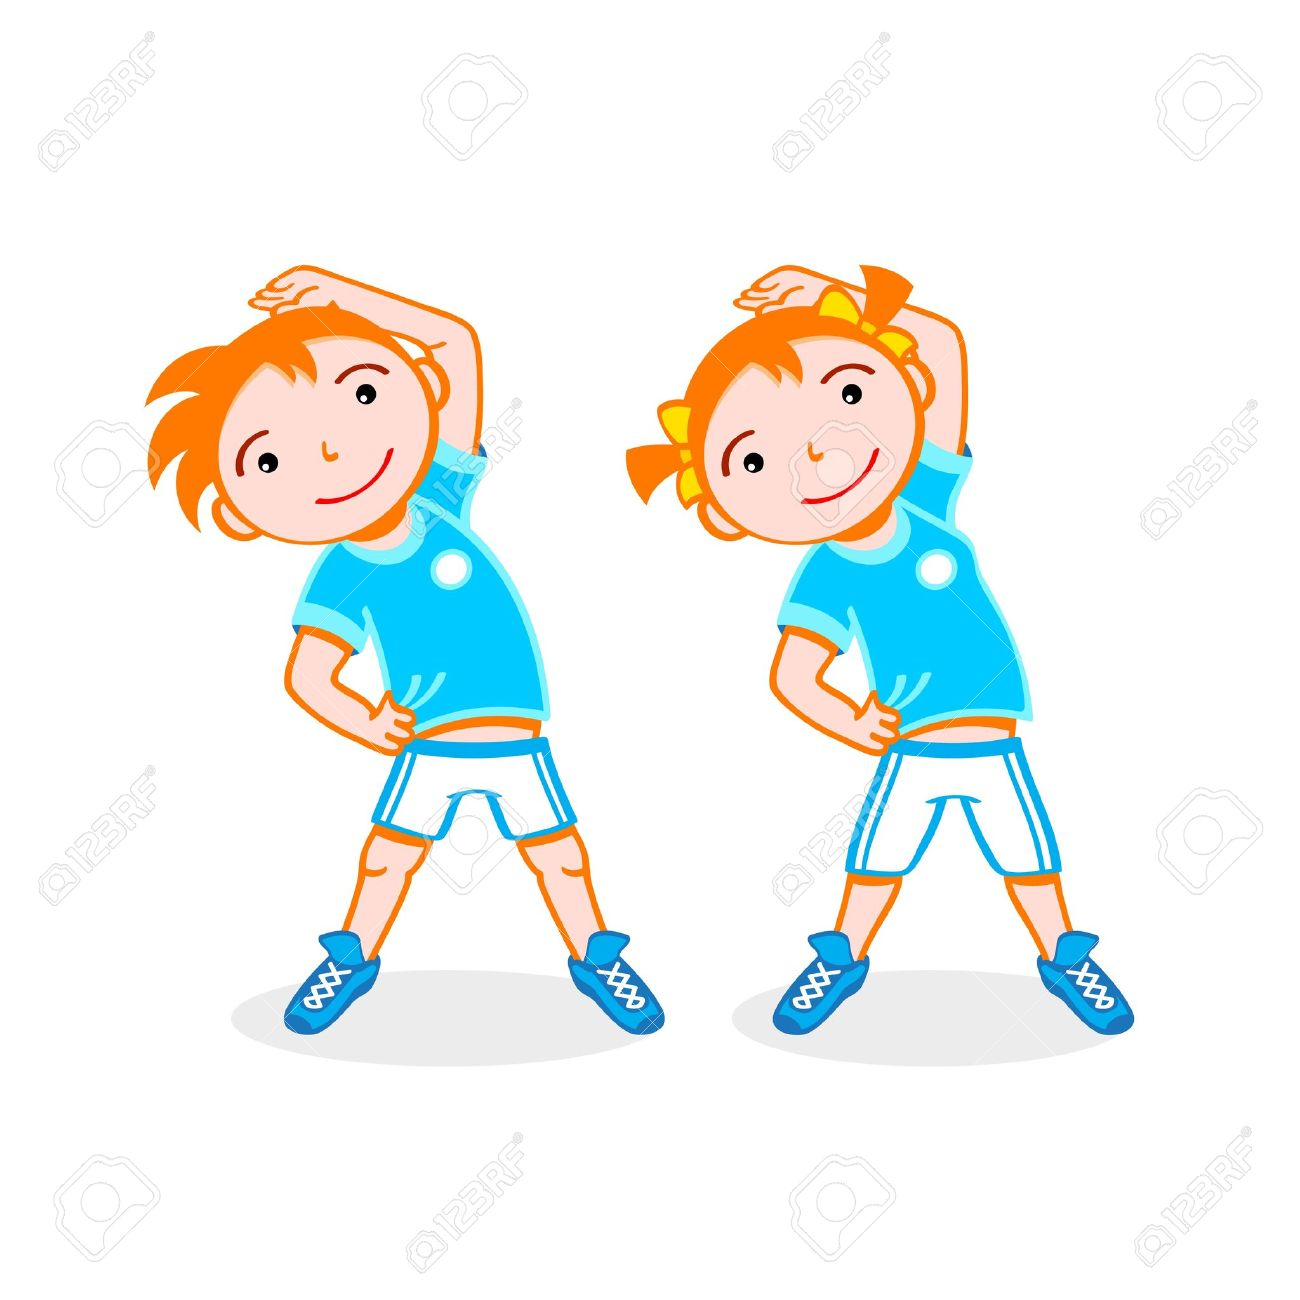 Do exercise clipart 4 » Clipart Station.